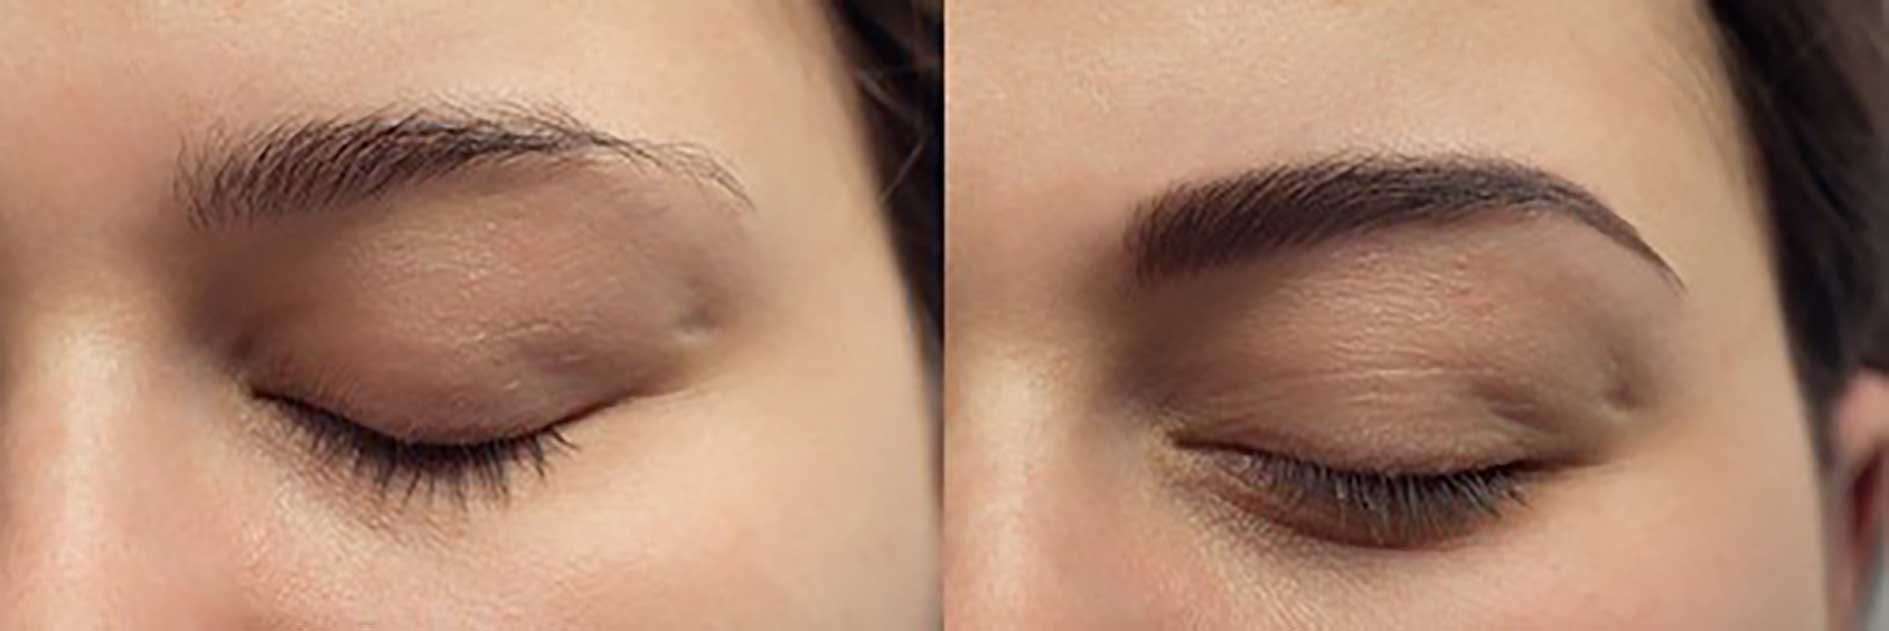 microblading before after brows